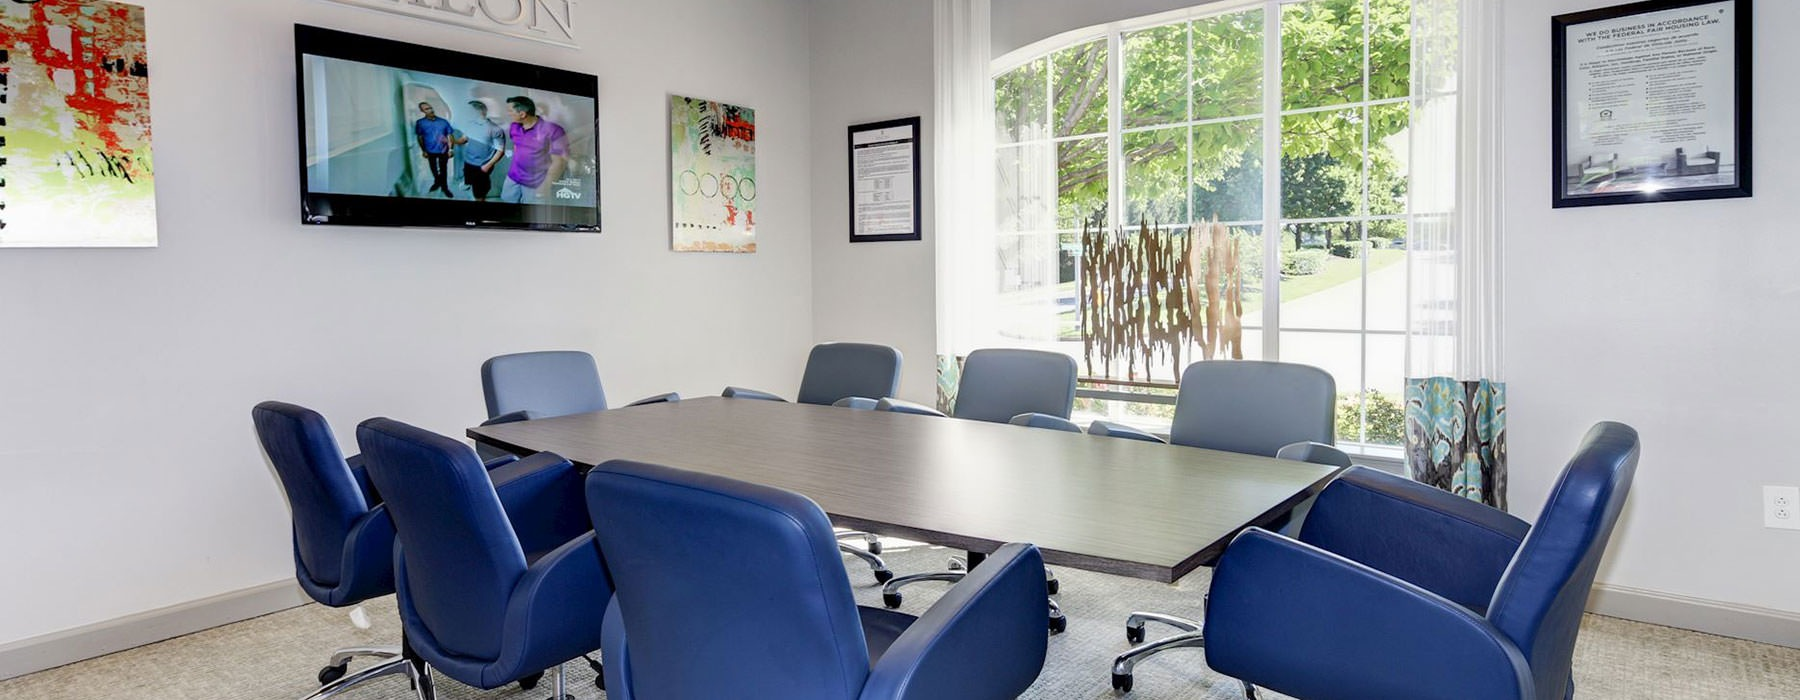 conference room with plenty of seating and large open spaces